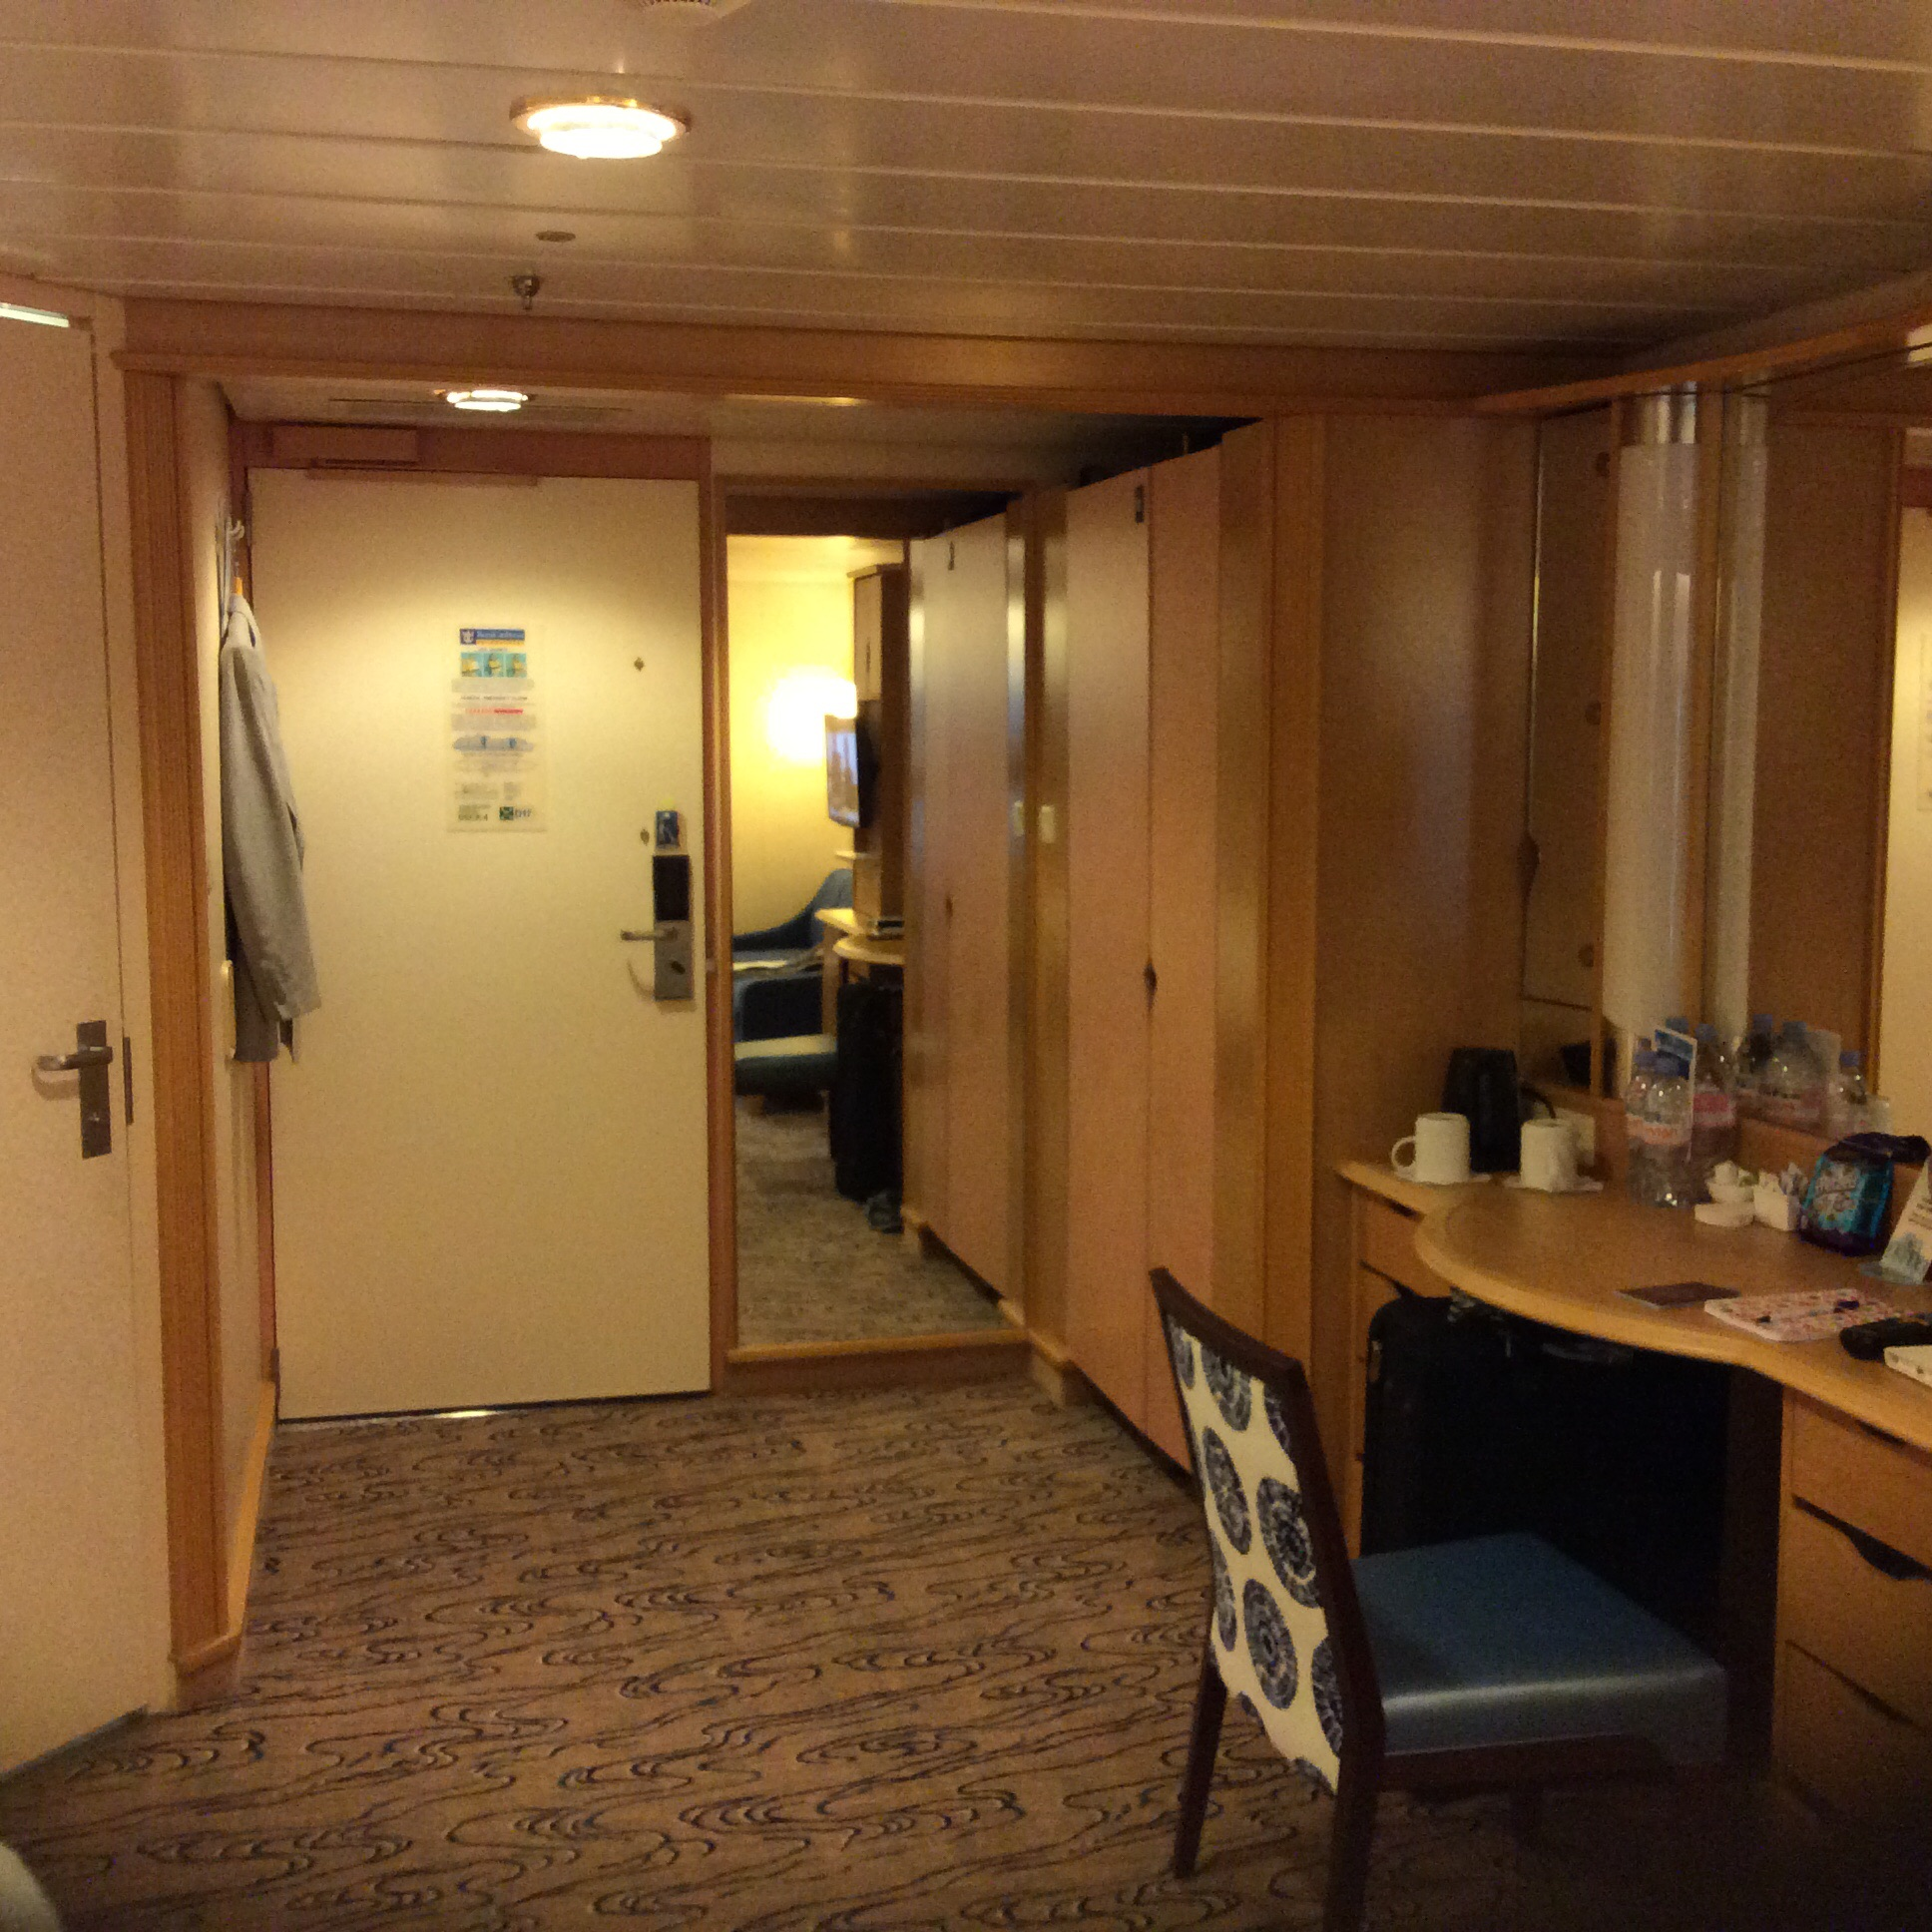 pictures of cabin 2324 on explorer of the seas